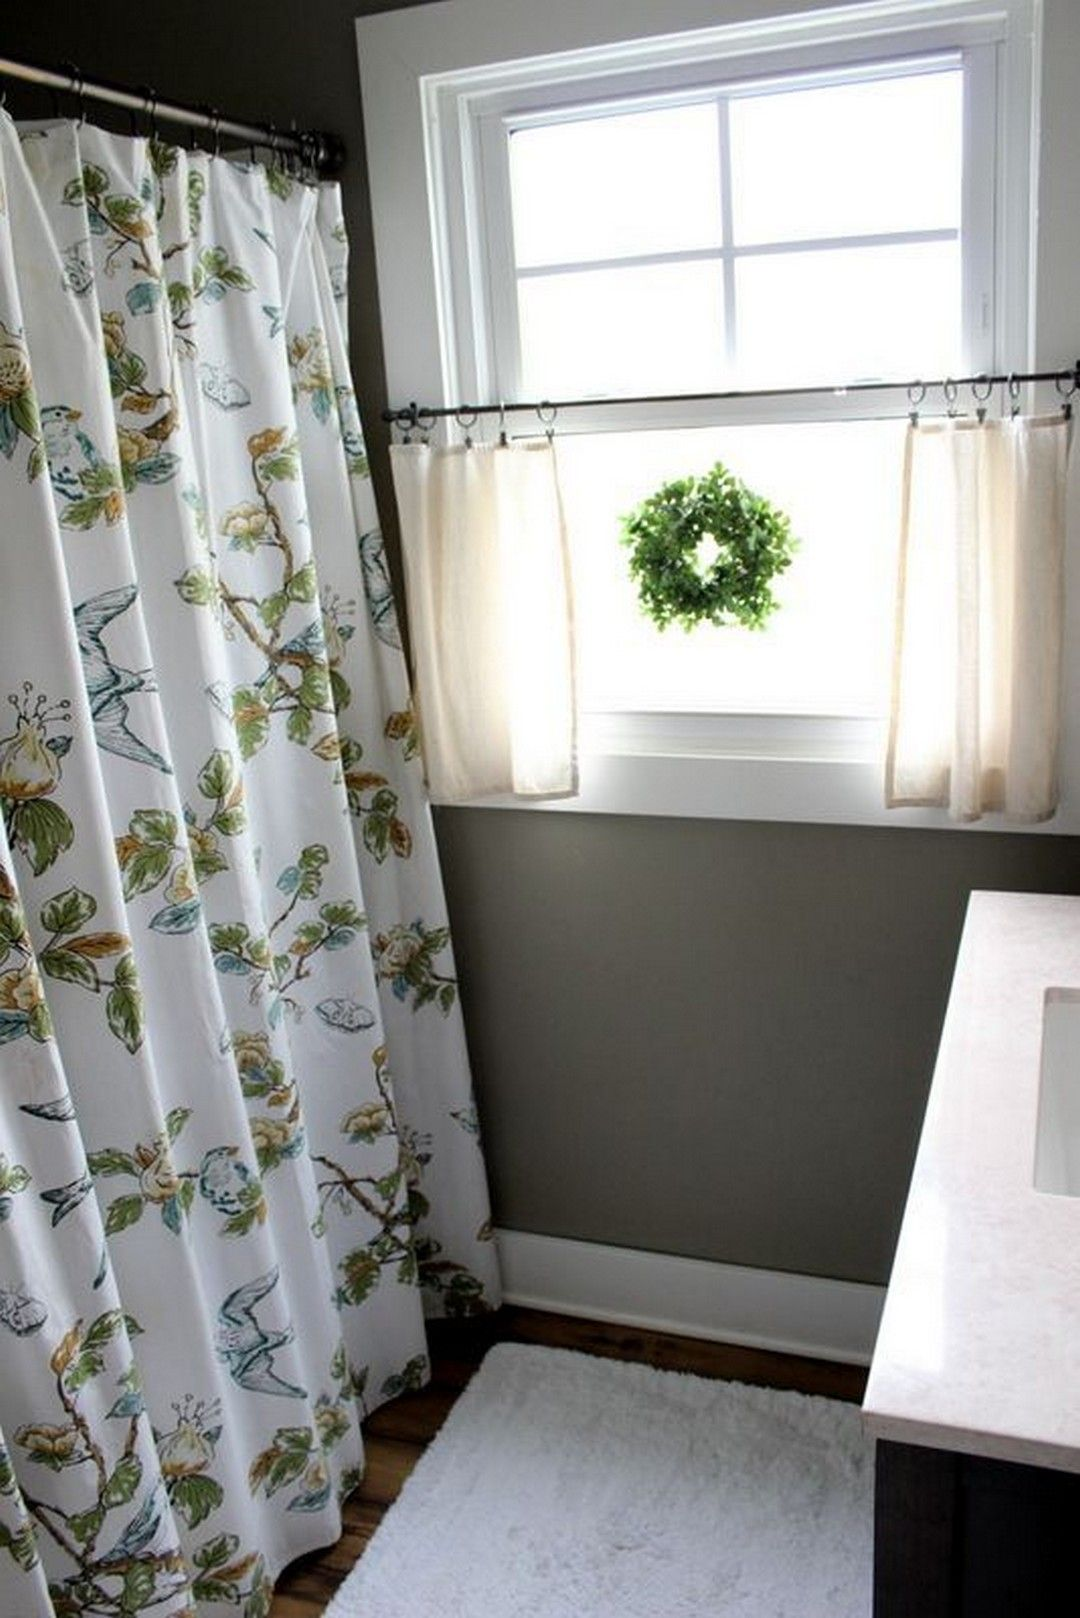 Bathroom Window Covering Ideas Simply You Can Manage On Yourself In 2020 Bathroom Window Coverings Bathroom Window Privacy Bathroom Window Curtains